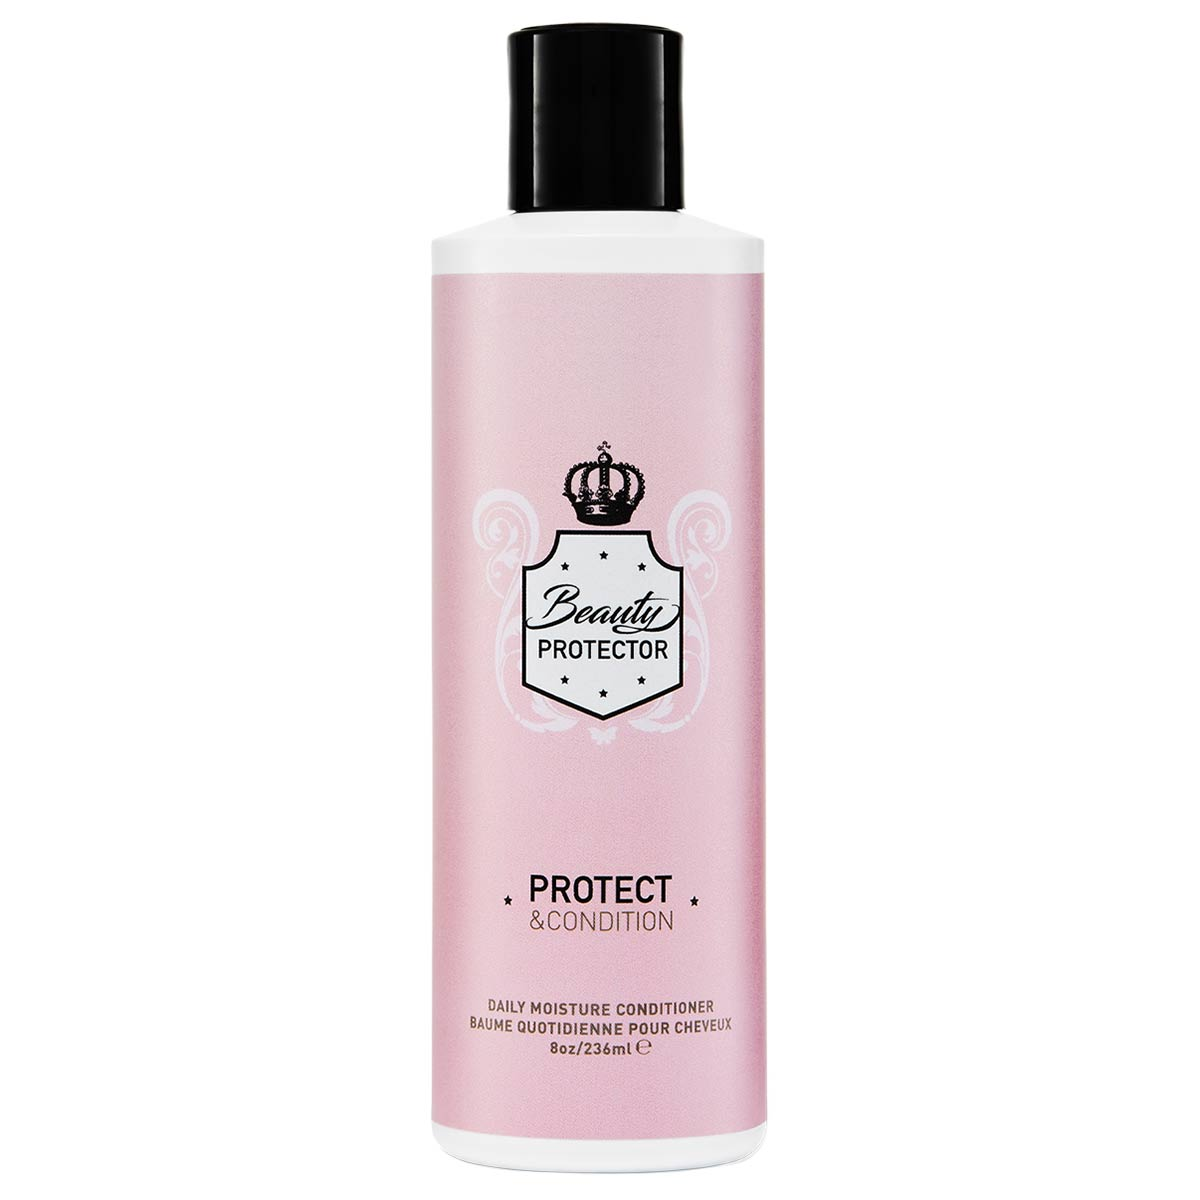 Beauty Protector Protect & Condition